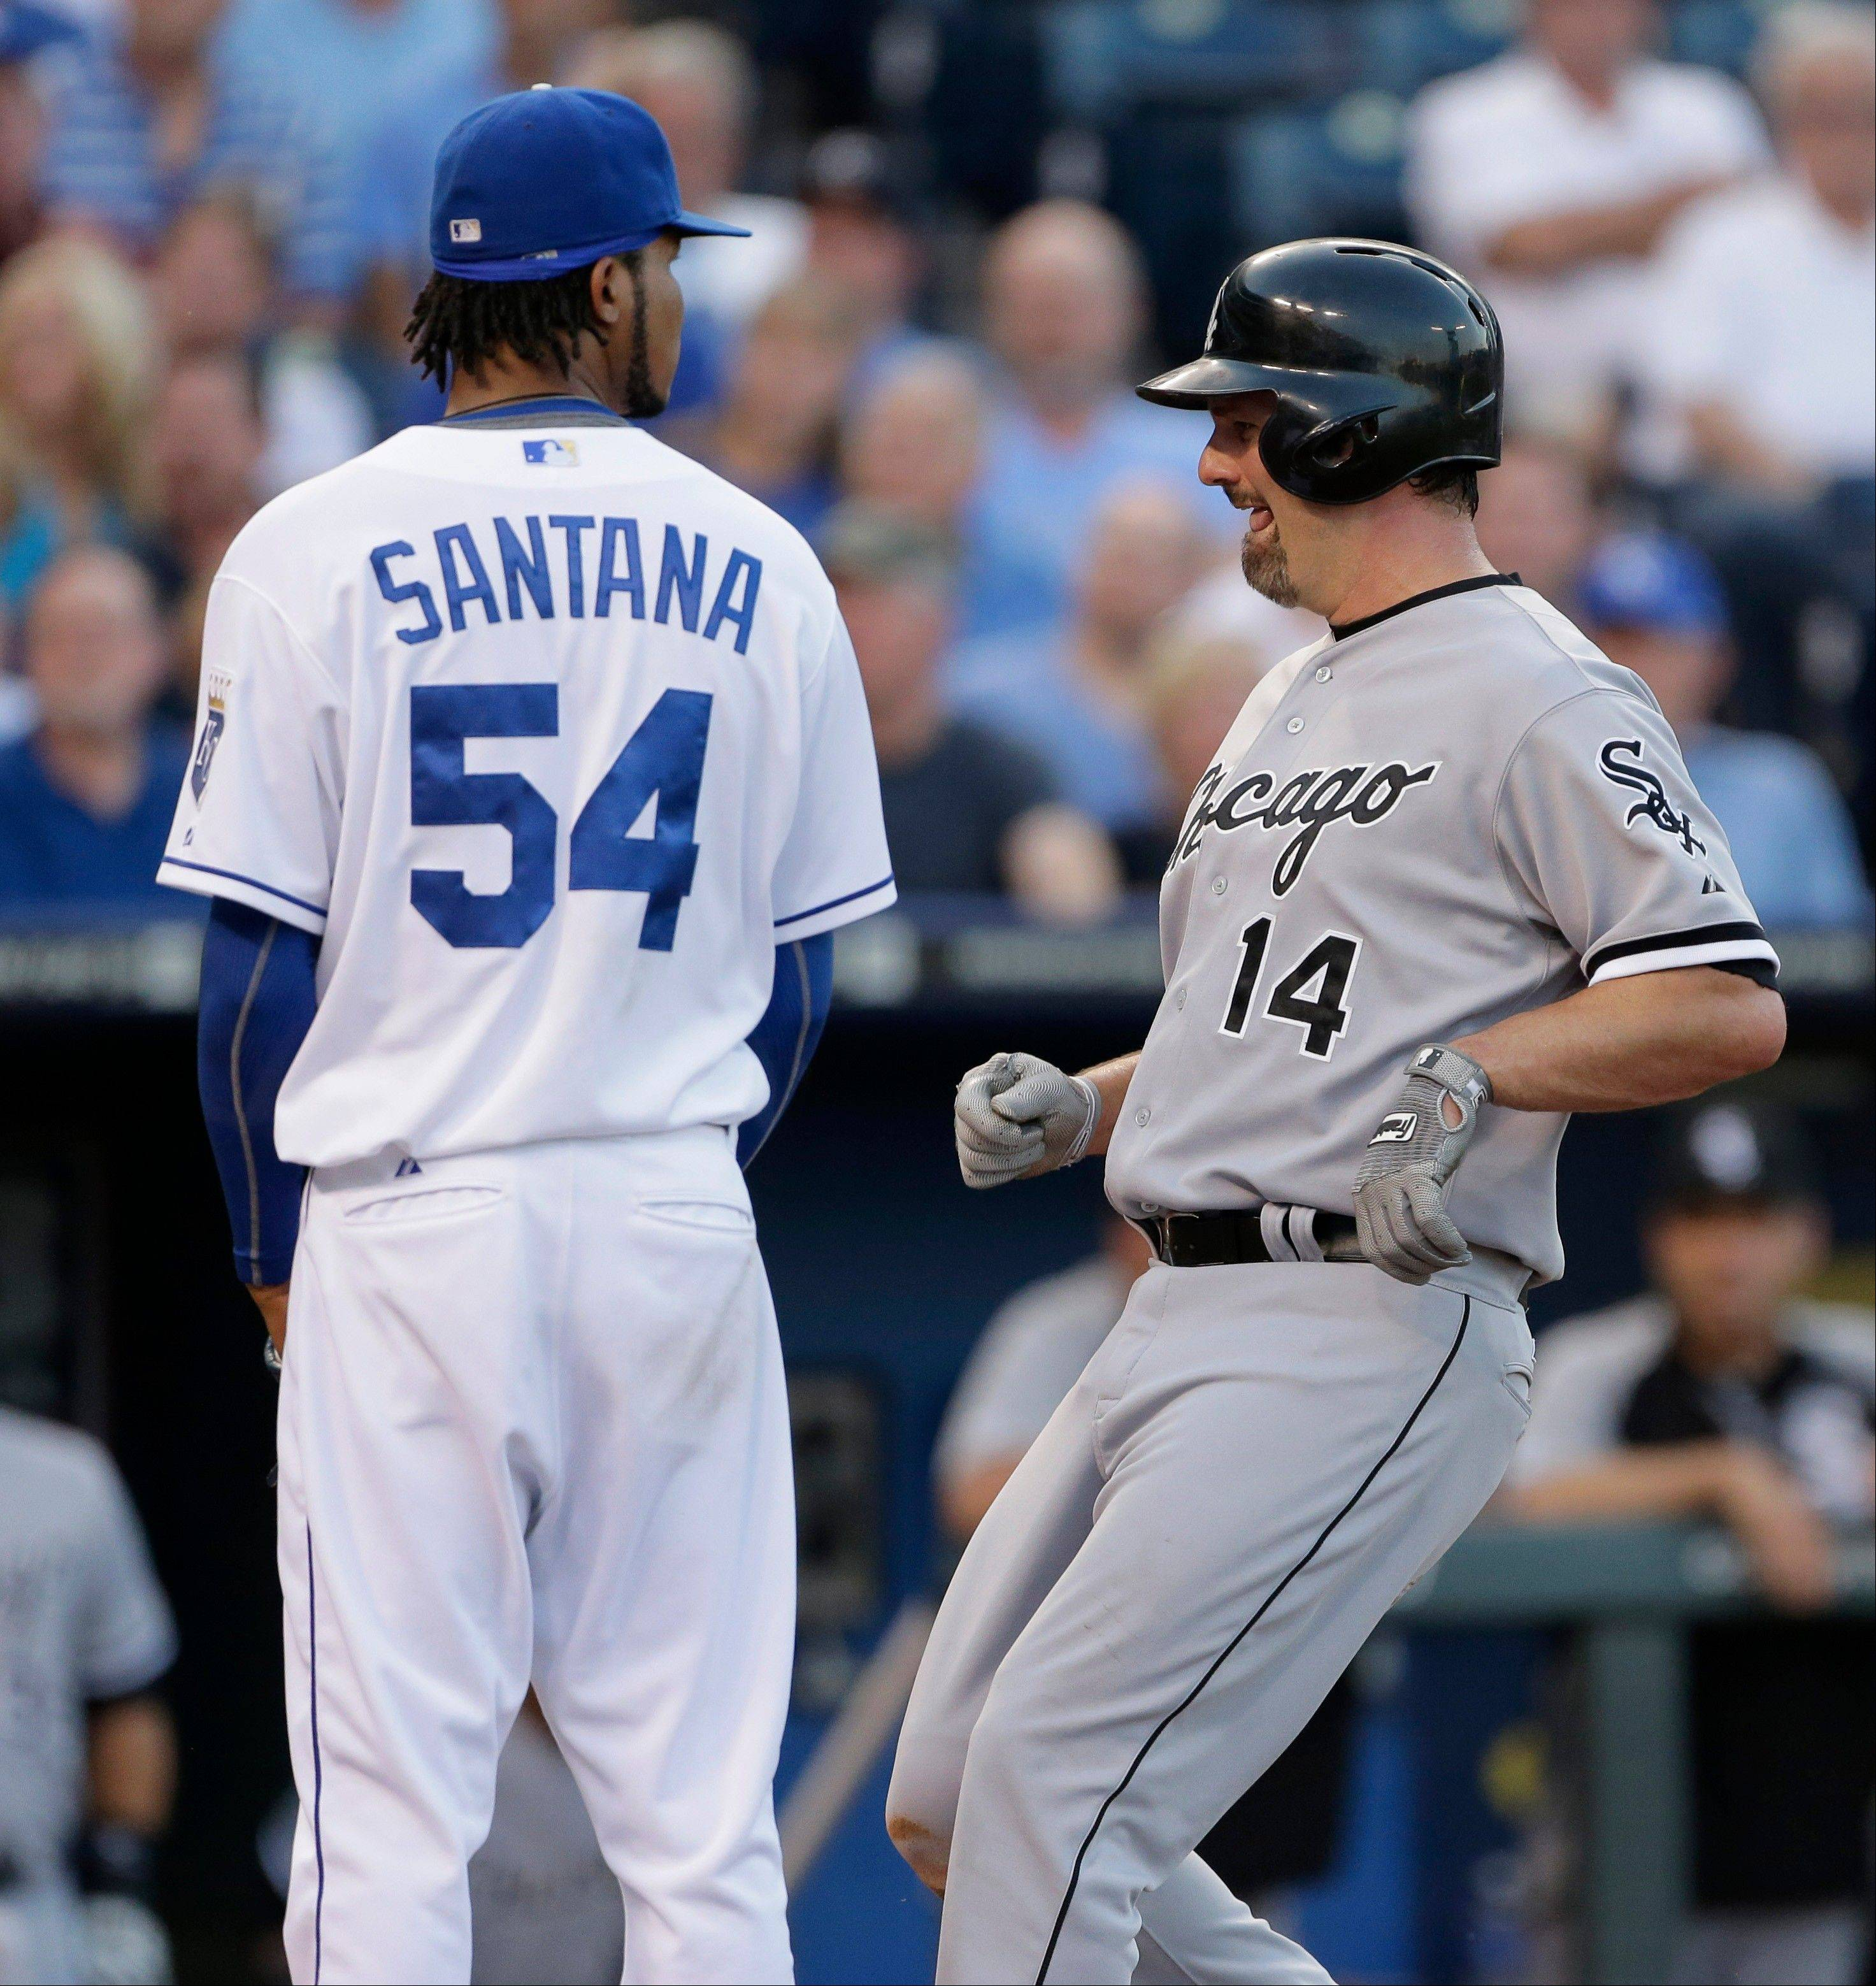 White Sox' Konerko won't chase numbers